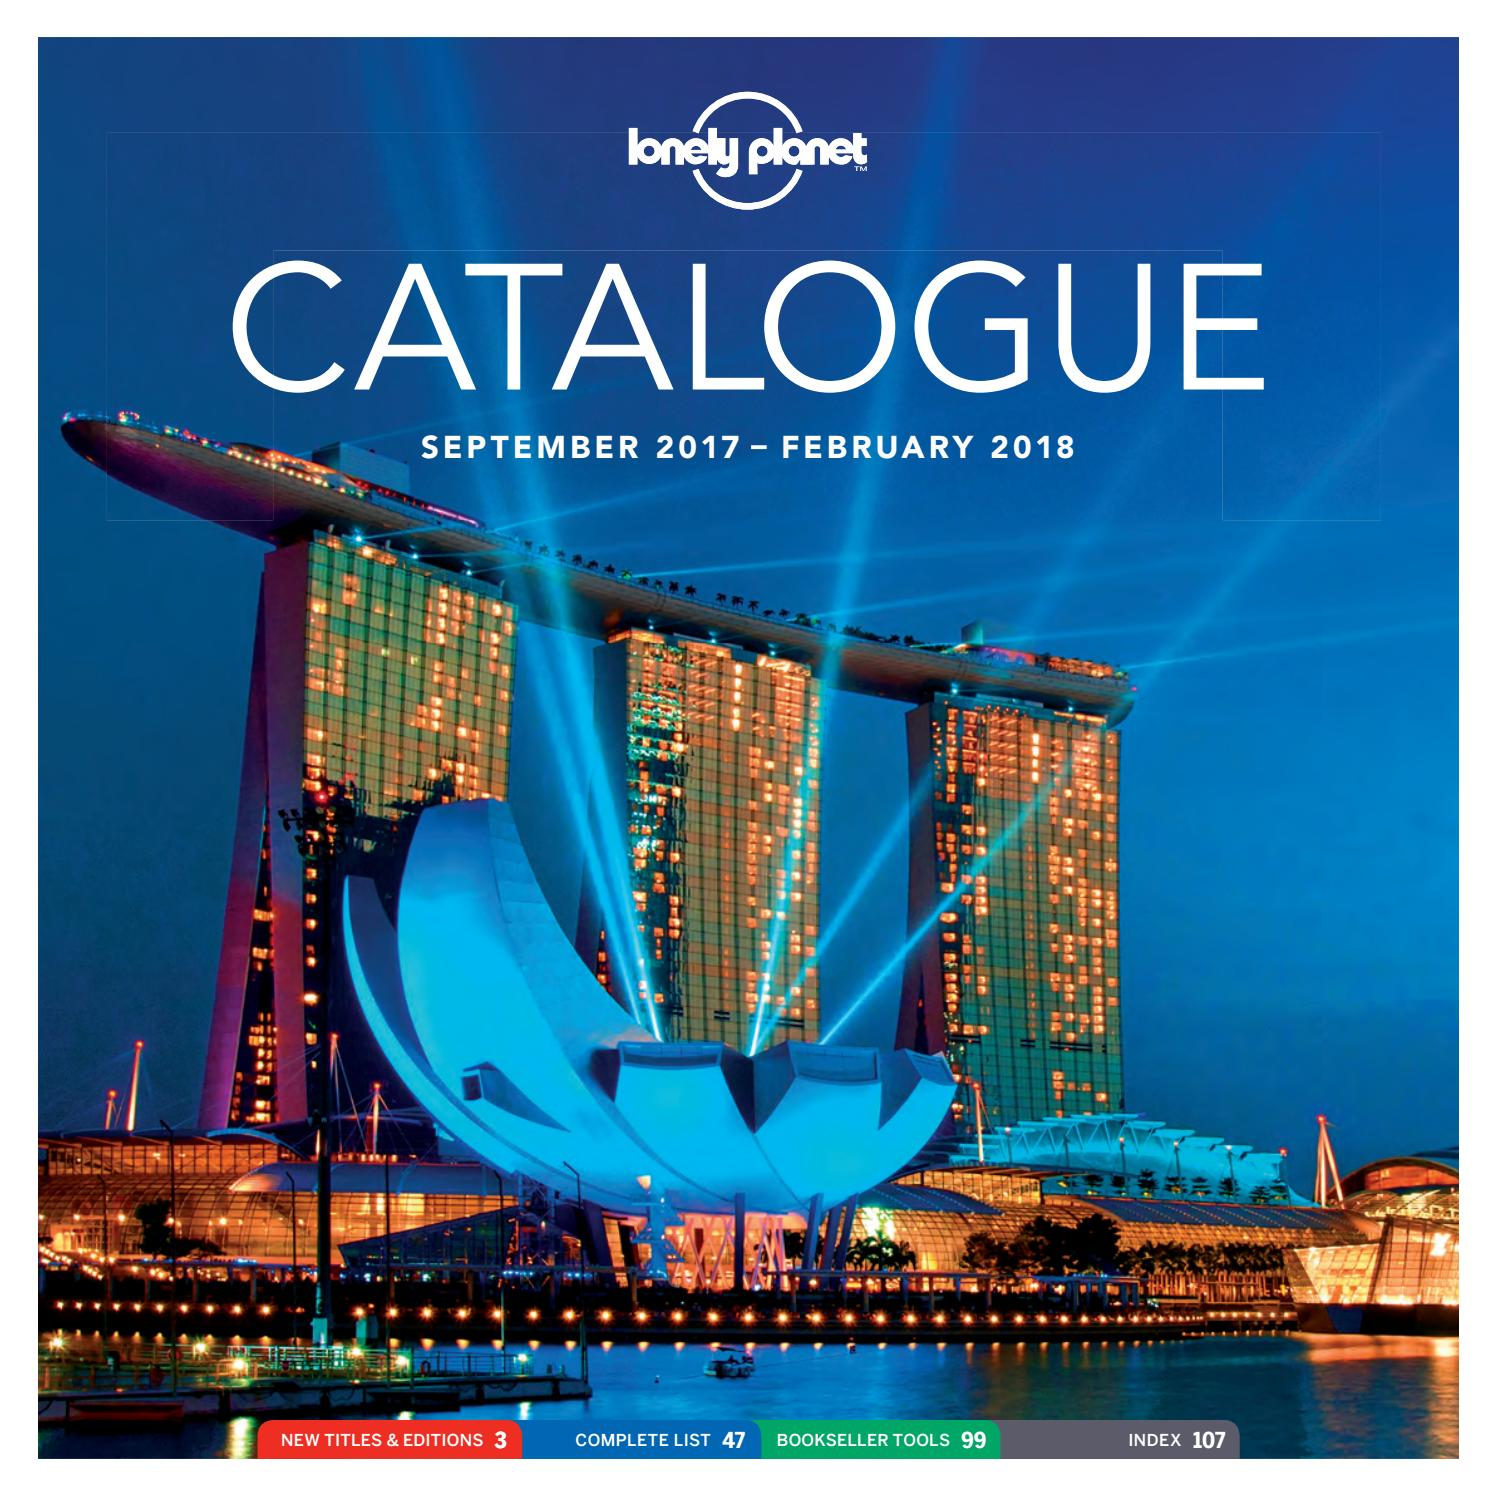 Lonely planet asia catalogue sep17 feb18 by lonely planet marketing lonely planet asia catalogue sep17 feb18 by lonely planet marketing issuu fandeluxe Gallery